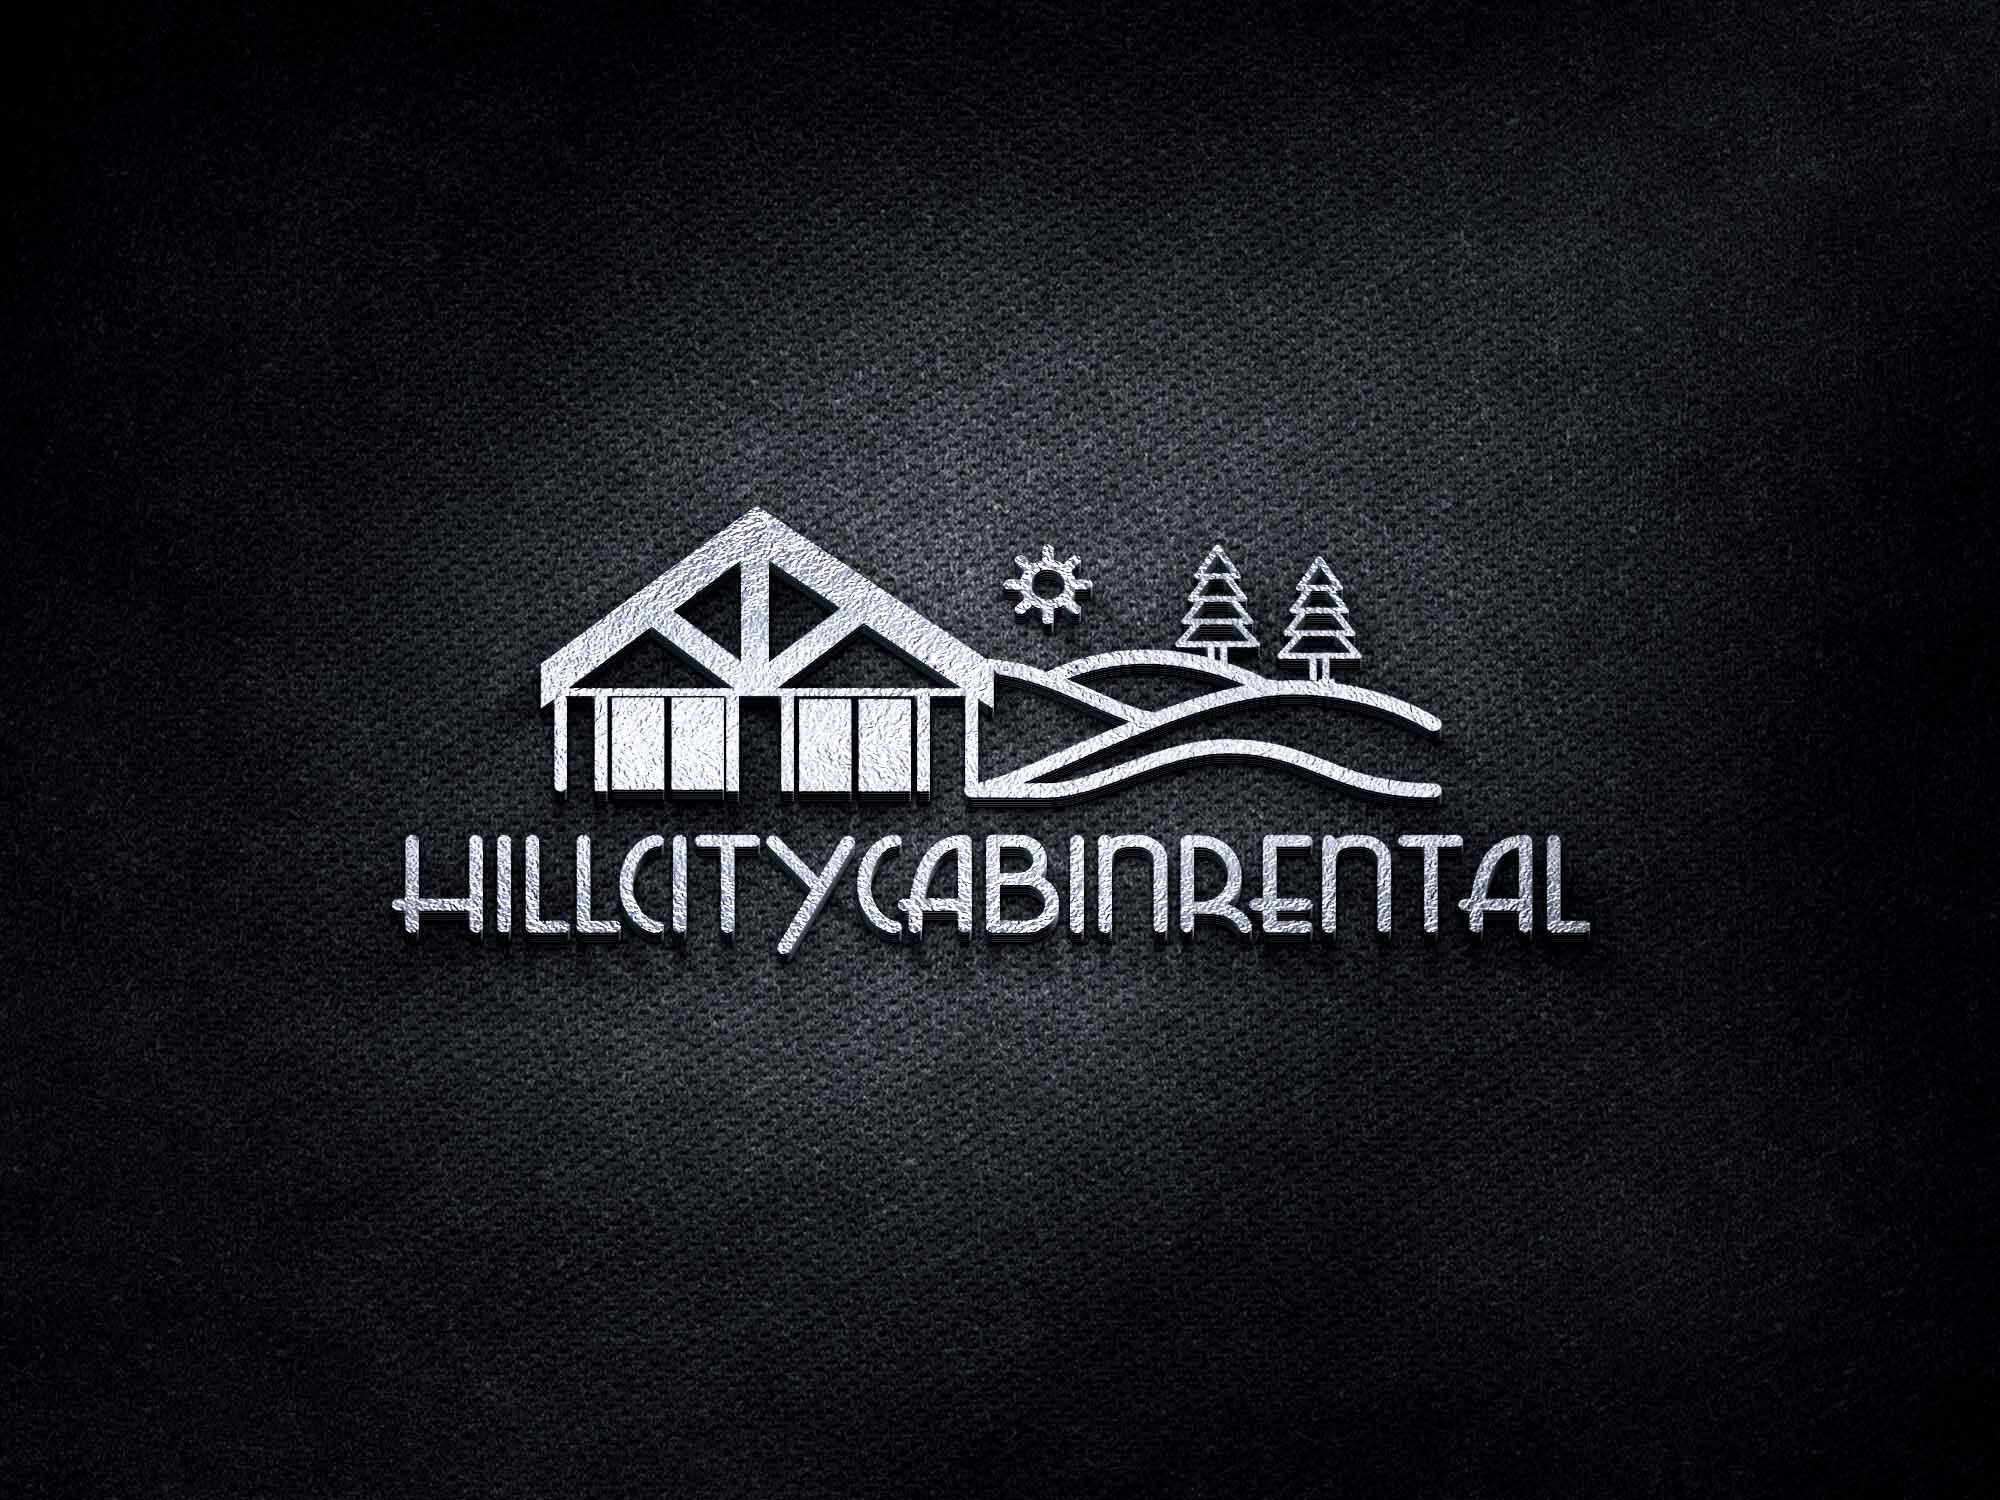 Hill City Cabin Rental